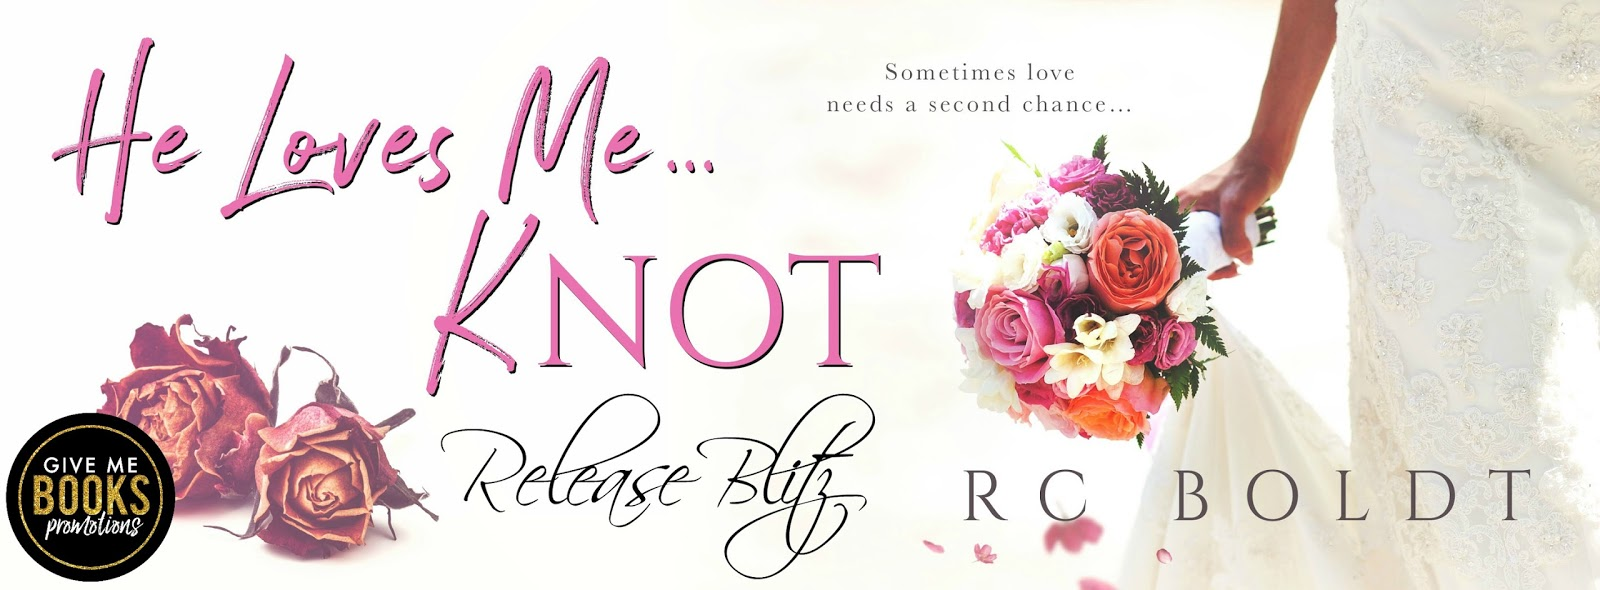 Release Blitz/New Review: He Loves Me Knot by RC Boldt – Words We